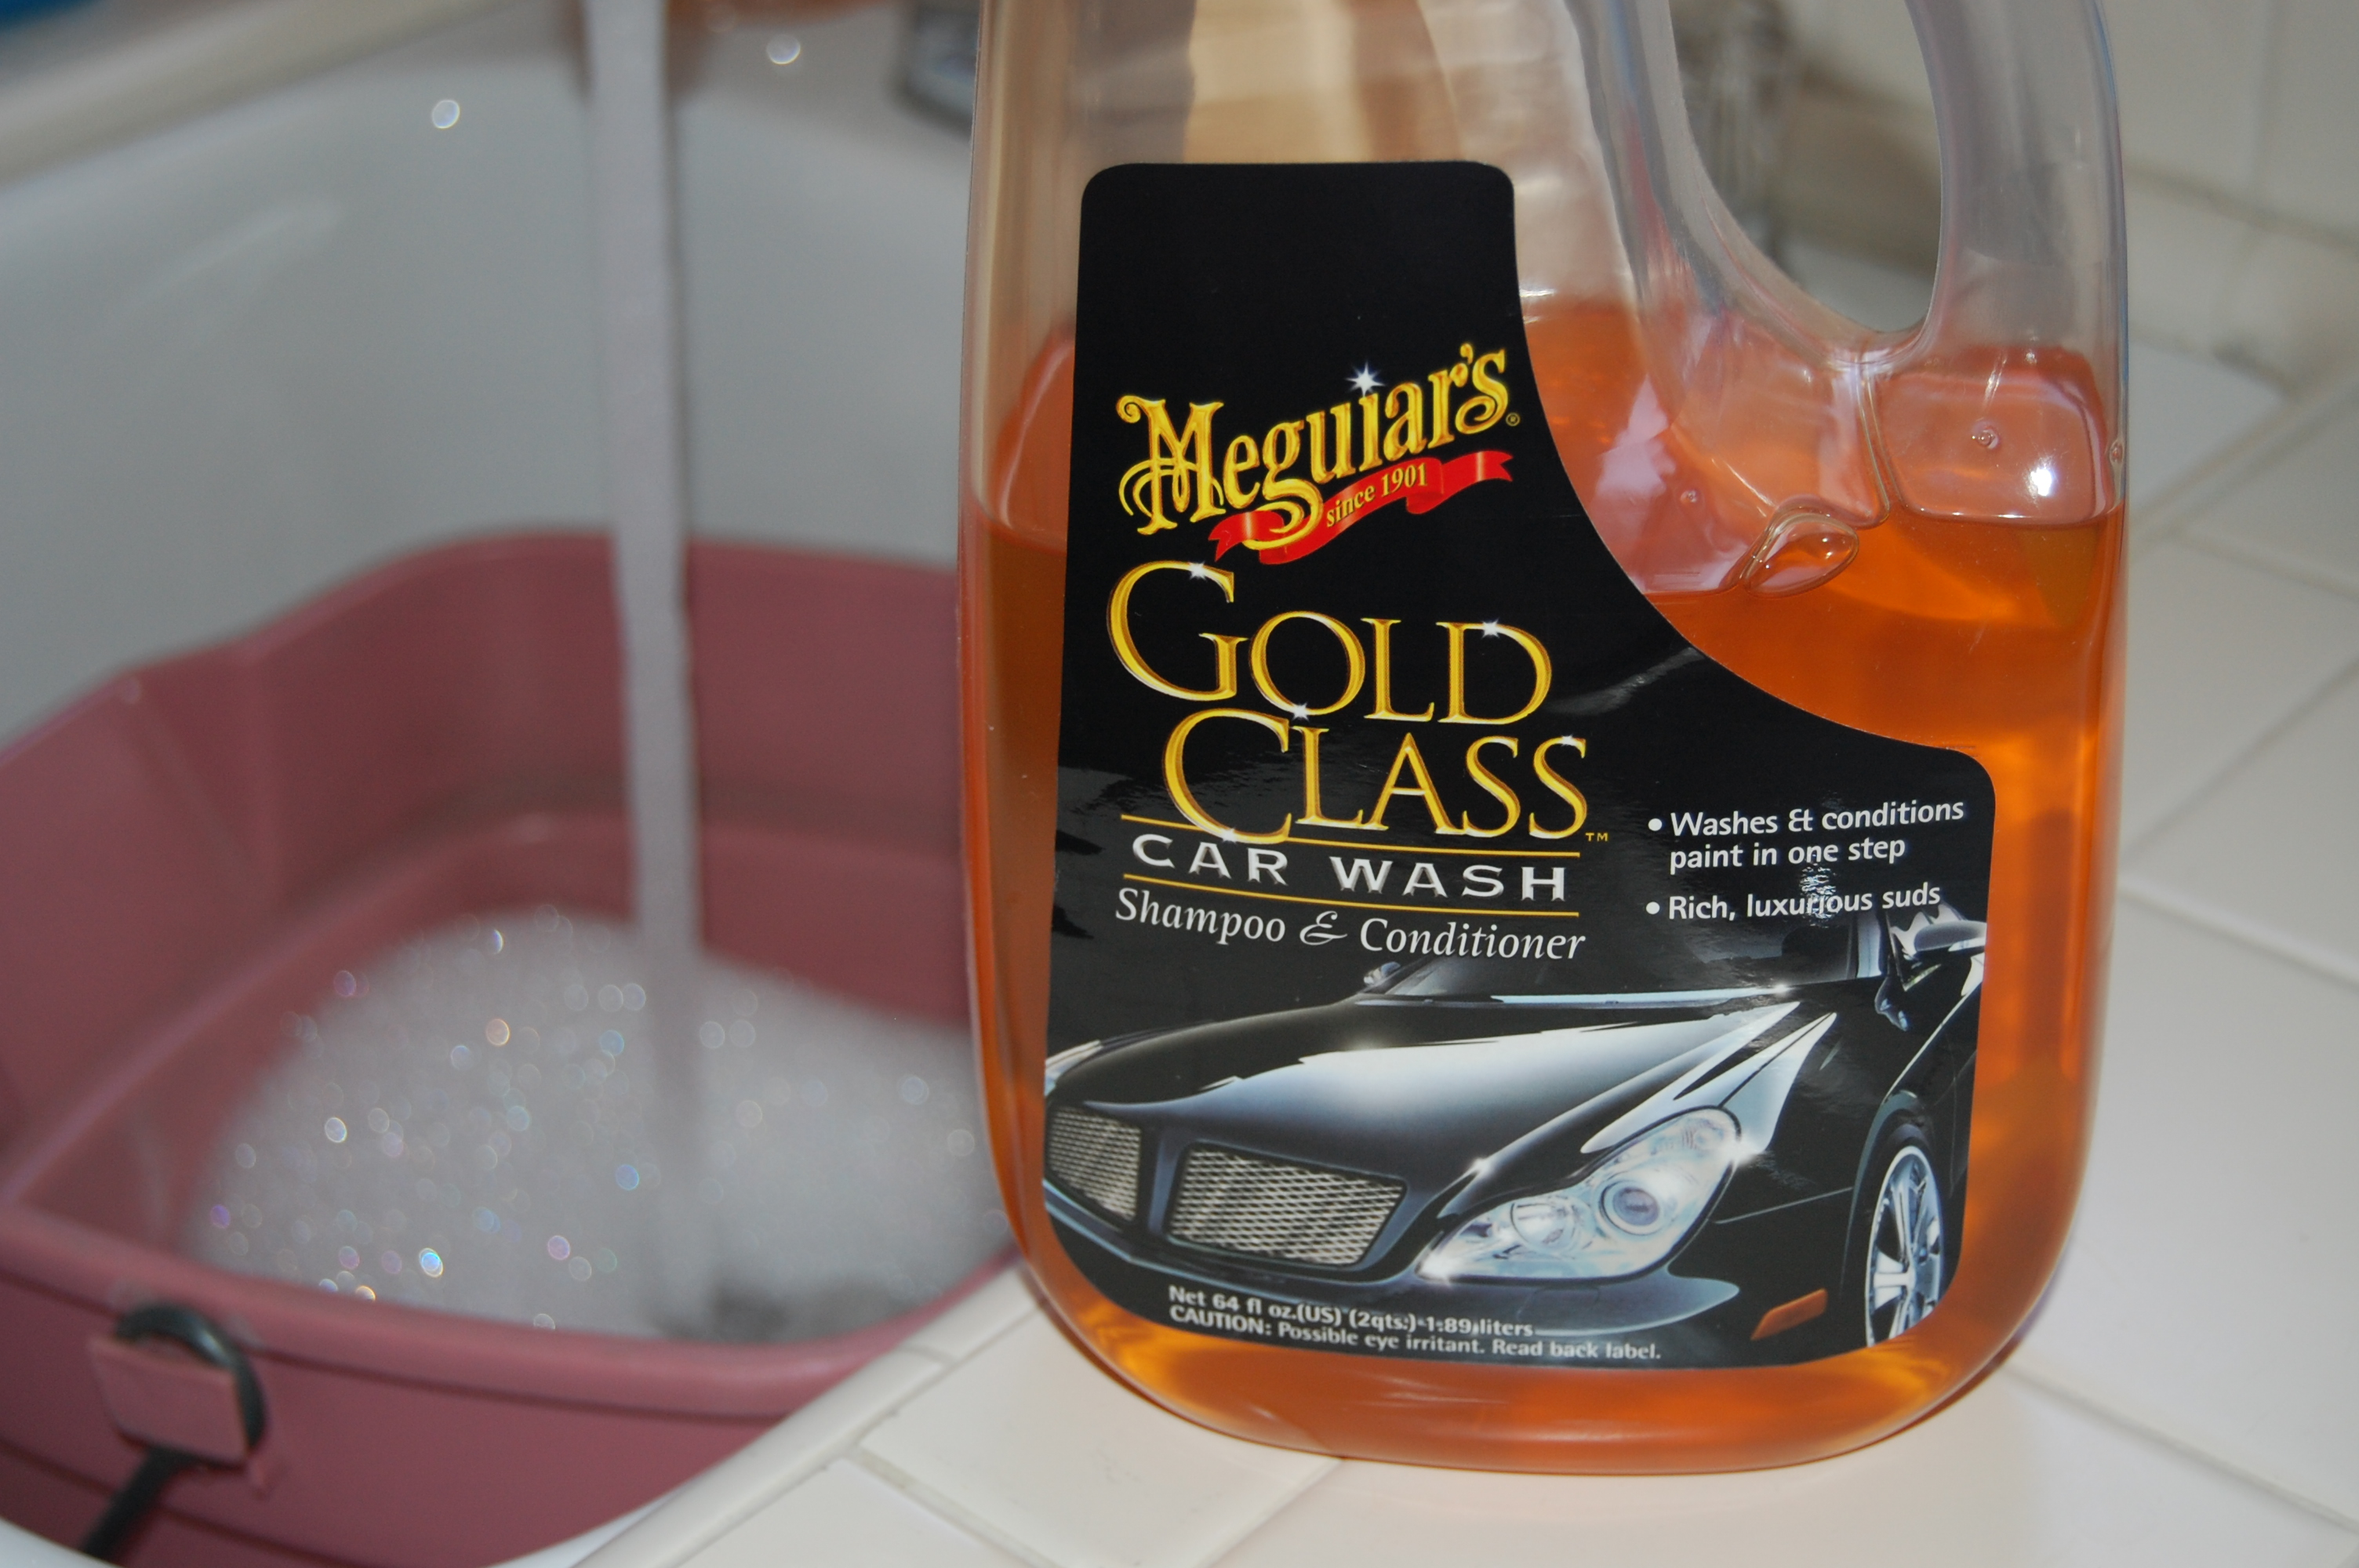 Meguiar's wash - brand doesn't really matter